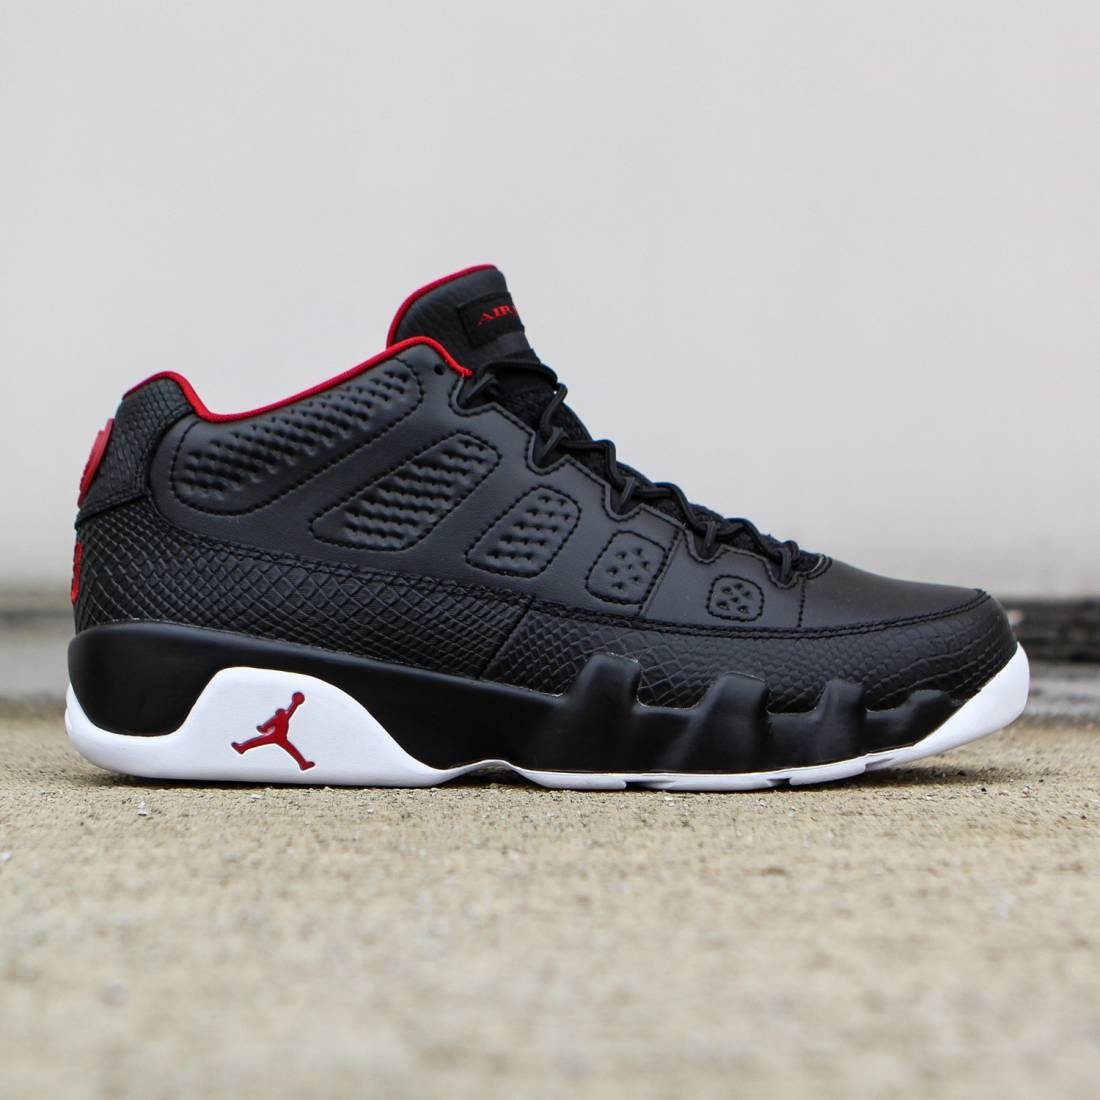 21785be6507 Jordan Men Air Jordan 9 Retro Low (black / white / gym red)